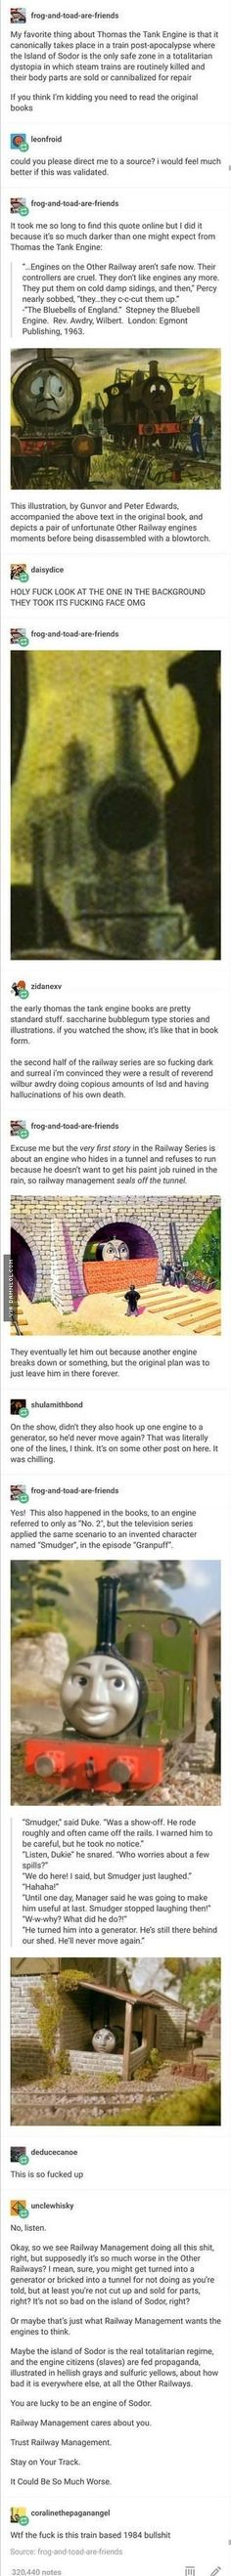 Thomas the Tank Engine Dystopian Discourse //ok not humor but I don't have a board for 'dystopian discourse' so it's going here Tumblr Funny, Funny Memes, Hilarious, Tumblr Stuff, Tumblr Posts, Childhood Ruined, Thomas The Tank, Lol, The More You Know